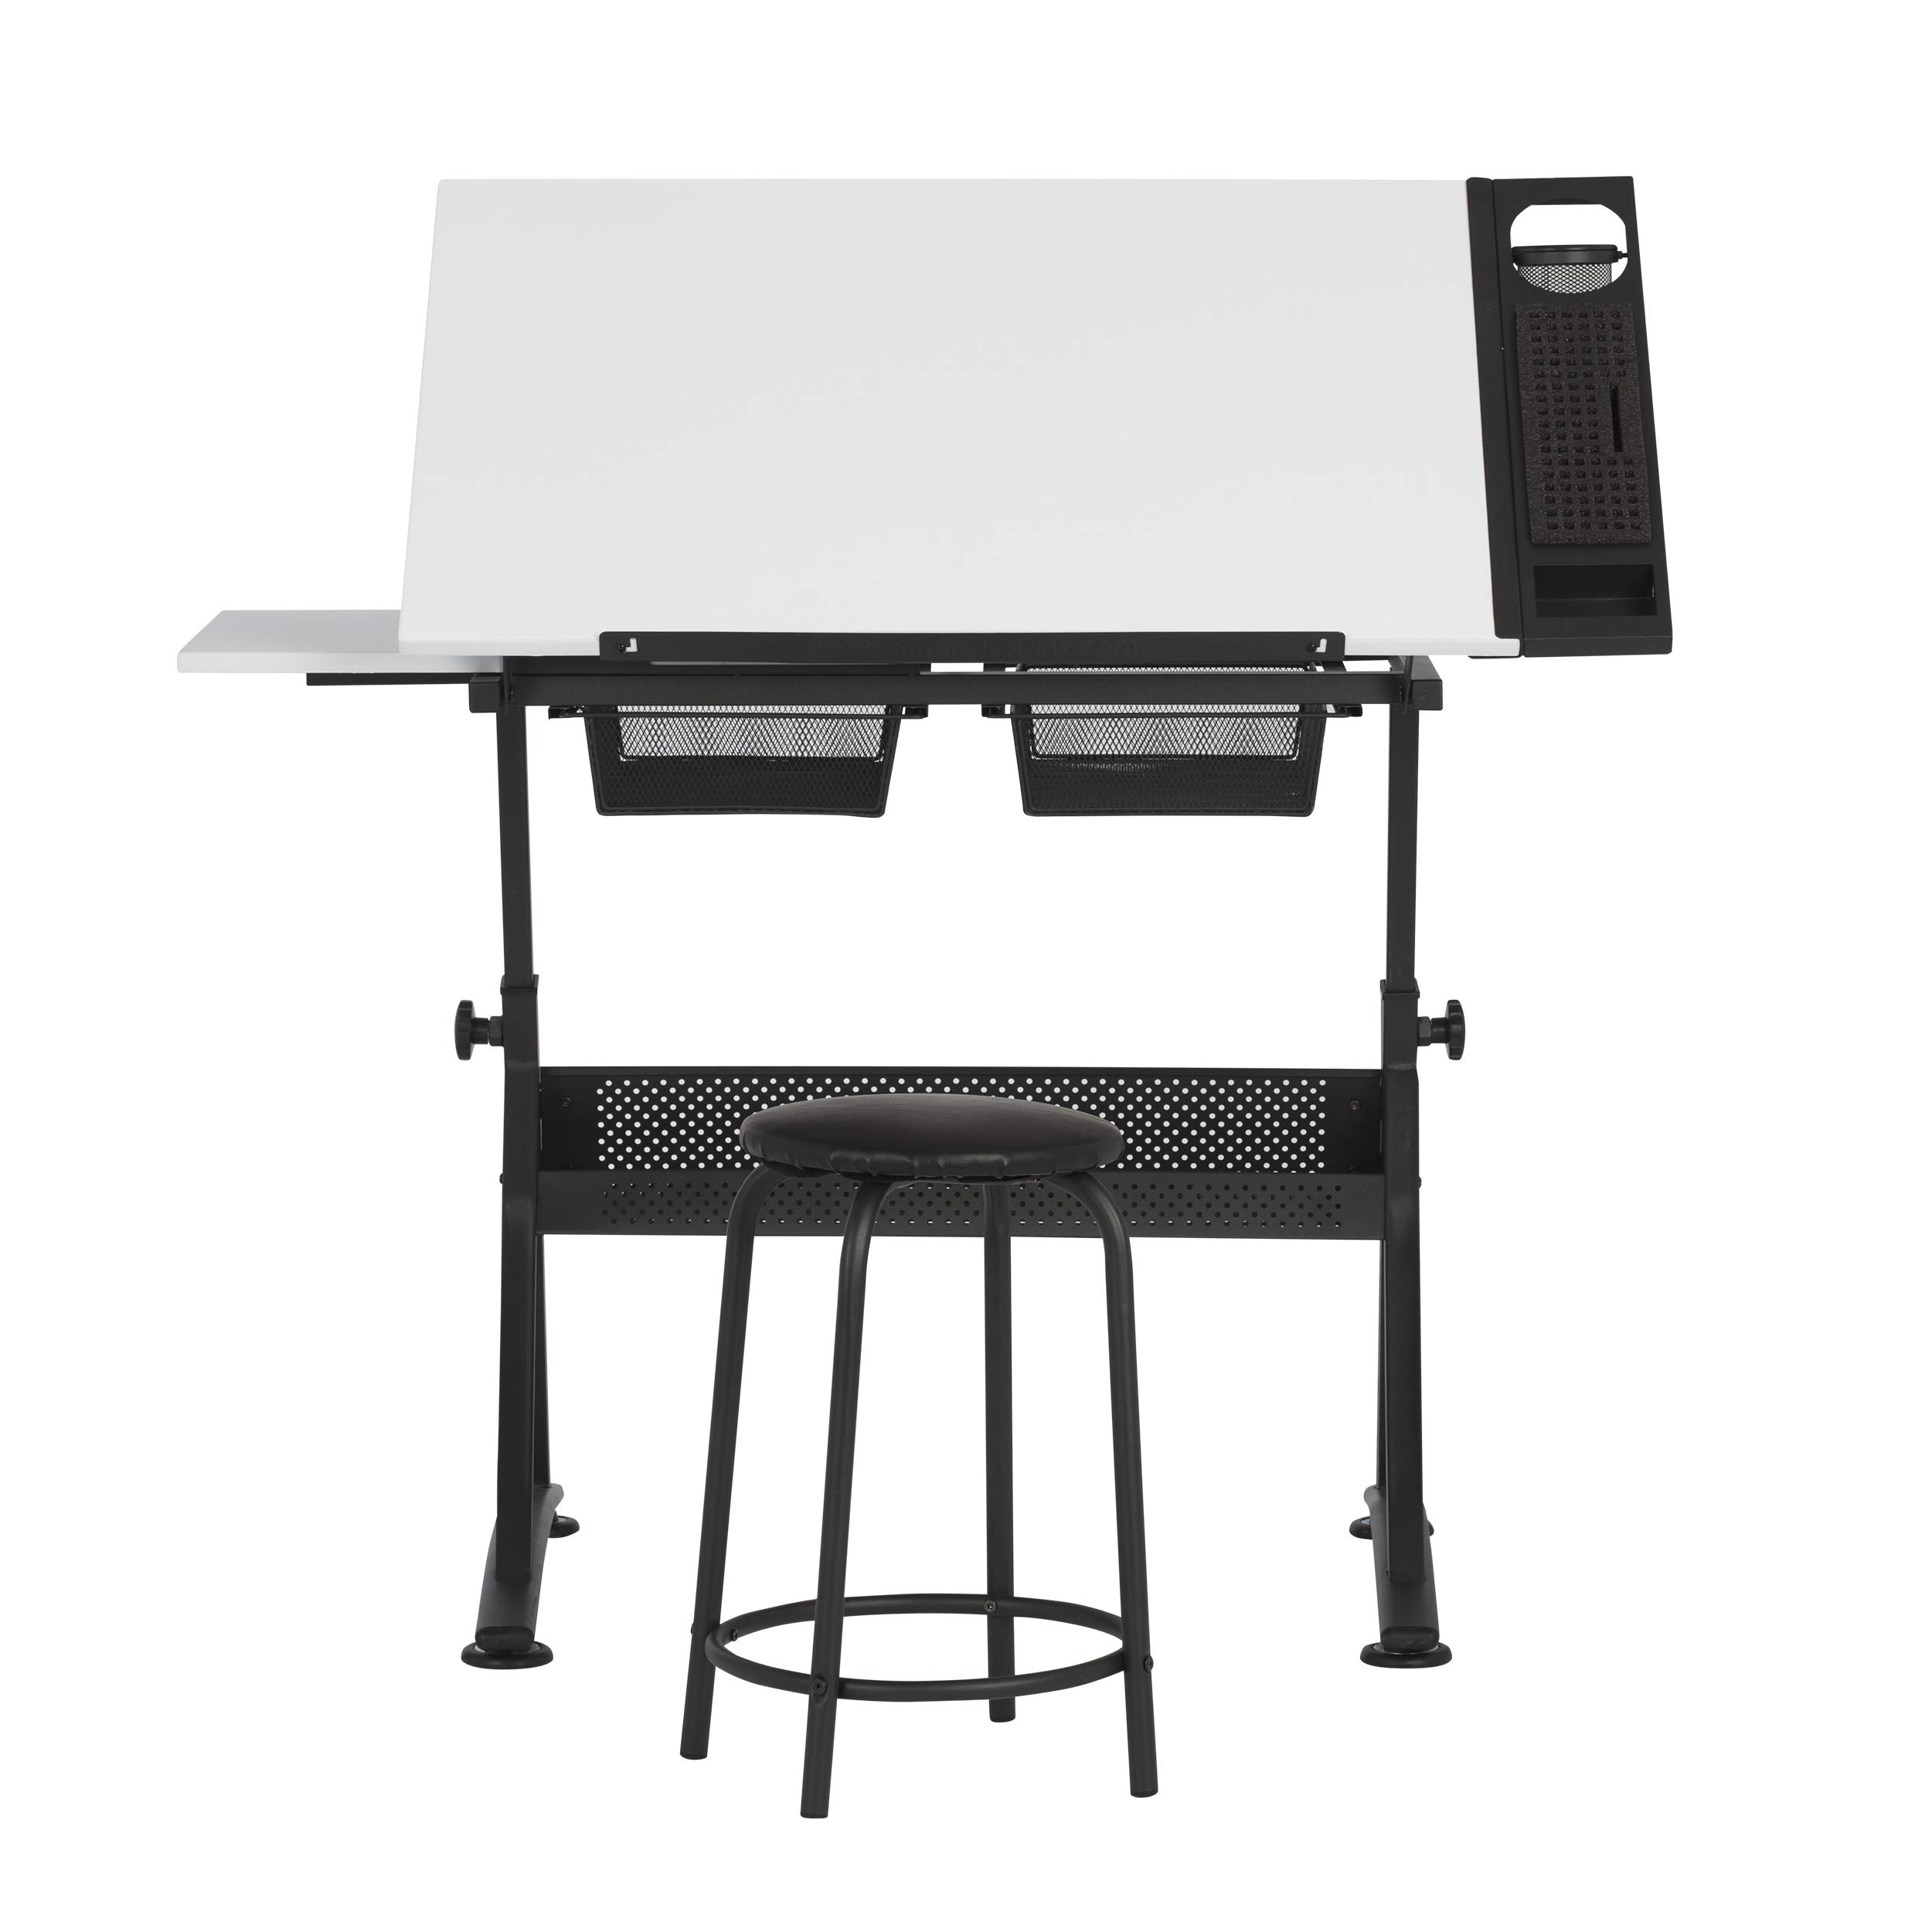 47'' W Fusion Craft Center with 24'' Supply Tray, 60 Degree Angle Adjustable Top and Height Adjustable from 27.75'' - 35.5'' when Flat, Stool and Slide-out Shelf Included, Charcoal / White by SD STUDIO DESIGNS